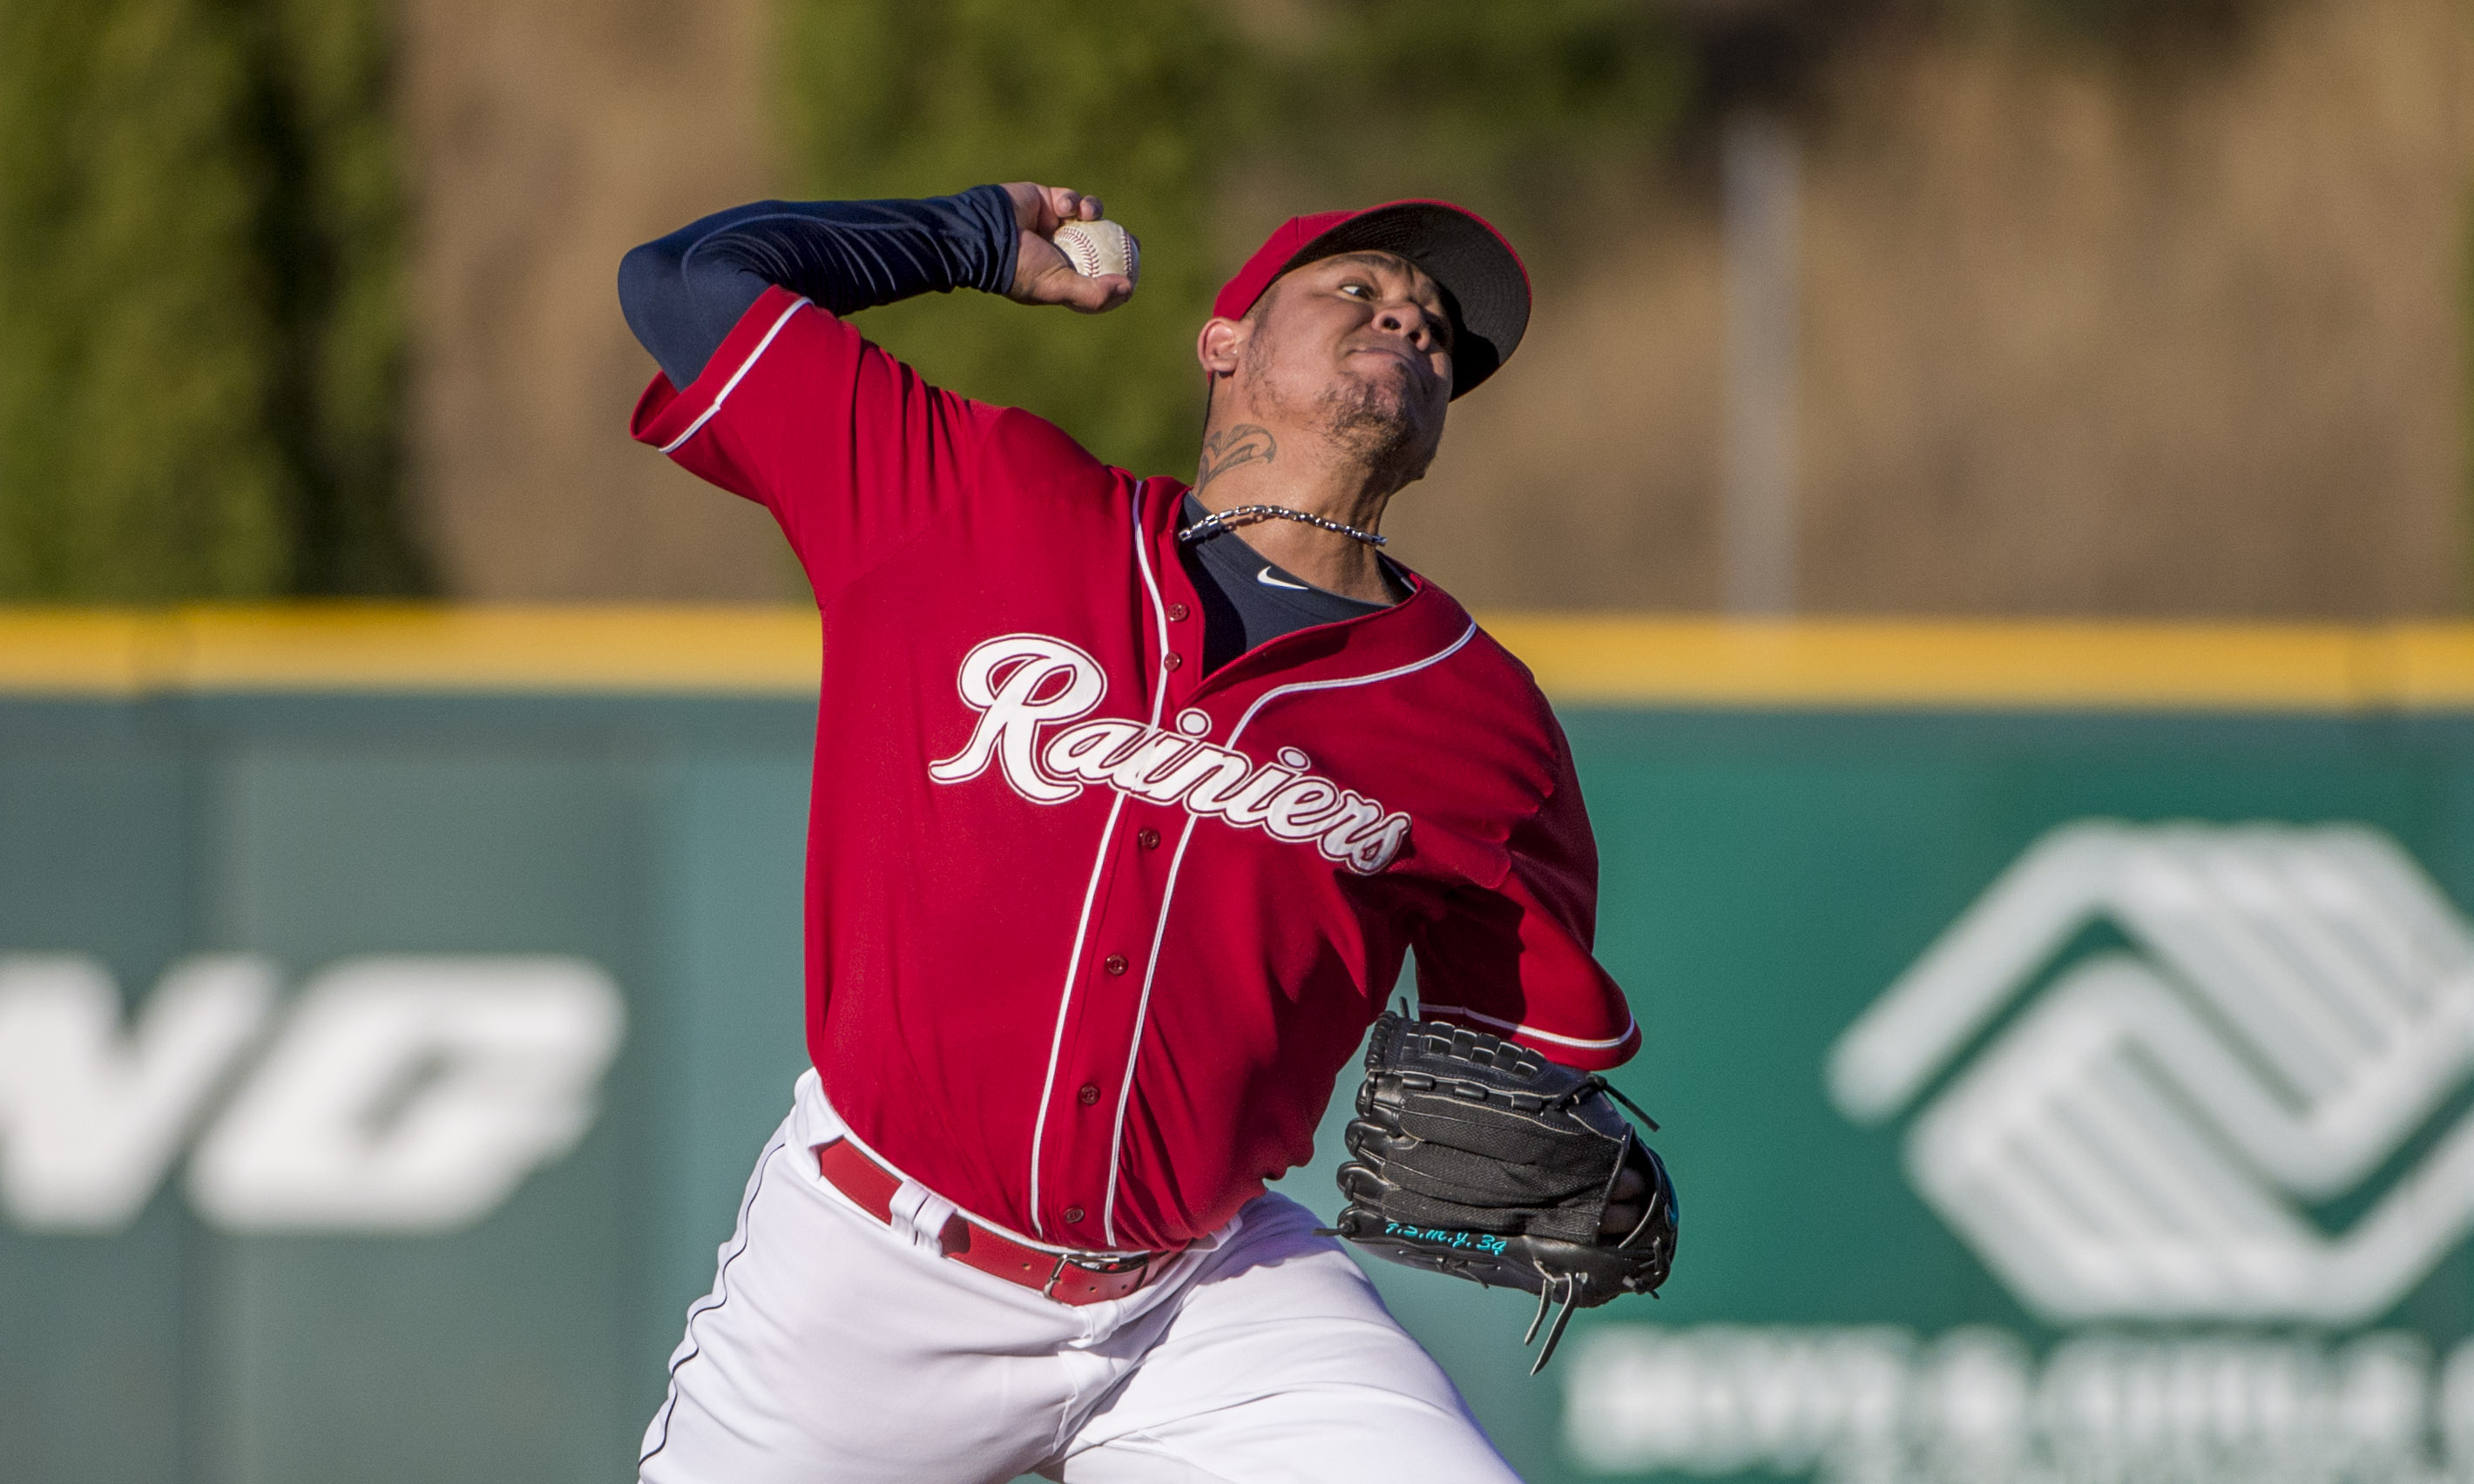 Seattle Mariners pitcher Felix Hernandez plays for the Tacoma Rainiers against the Colorado Springs Sky Sox on a rehab assignment, Friday, July 15, 2016, in Tacoma, Wash.  (Peter Haley/The News Tribune via AP)